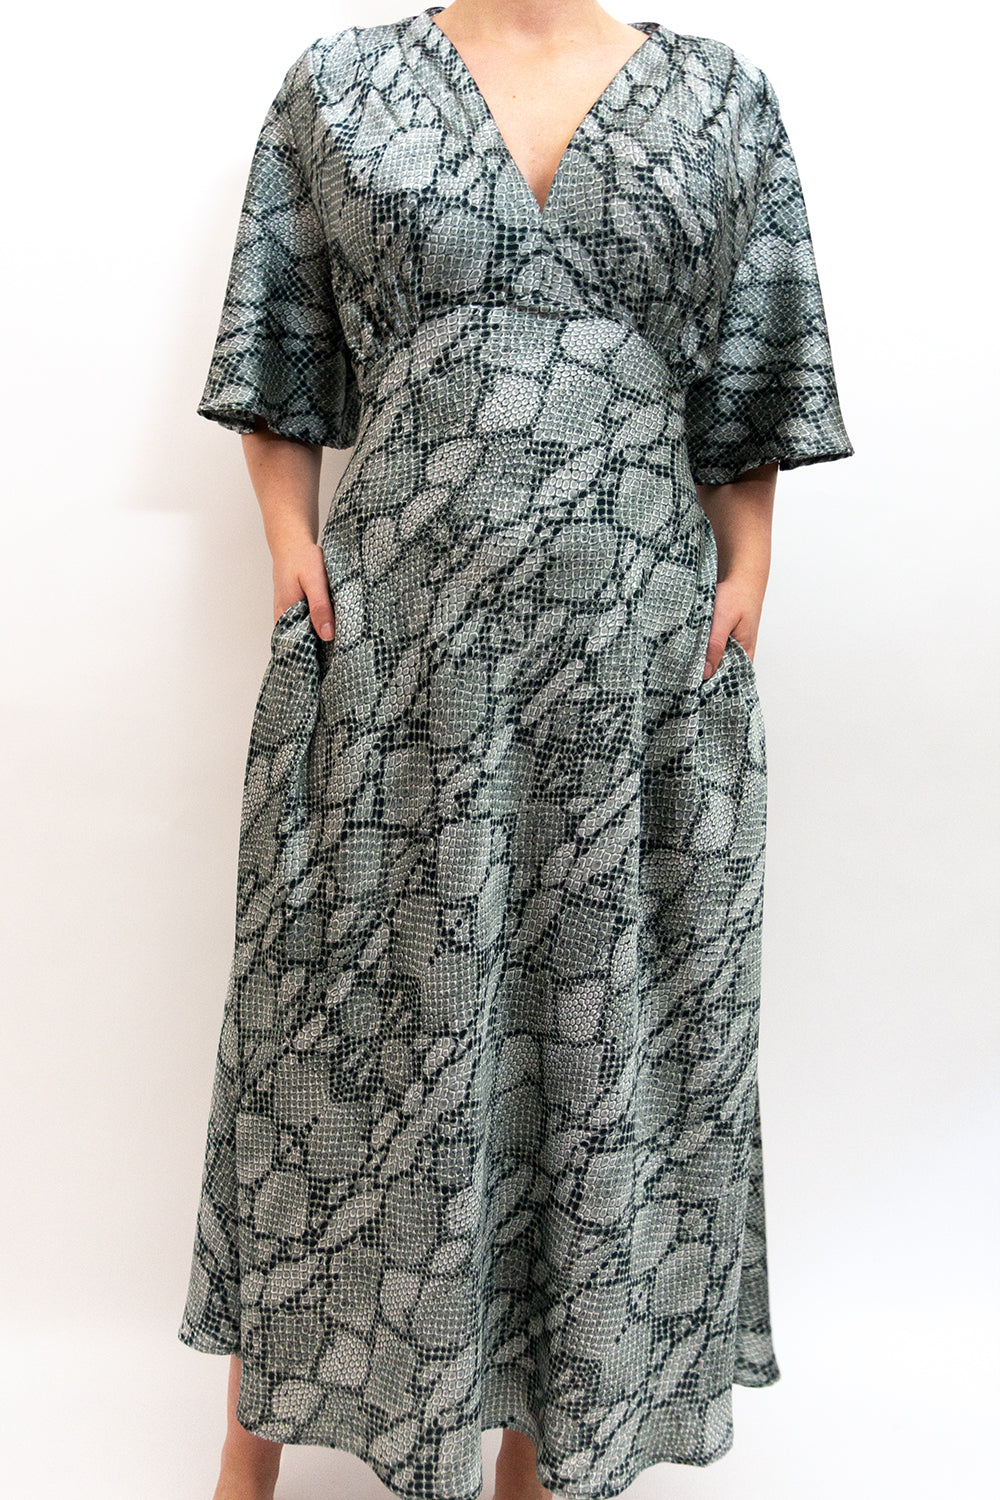 BAZ INC. - Snake Skin Print Dress - Australian Fashion and Accessories Boutique - Faid Store